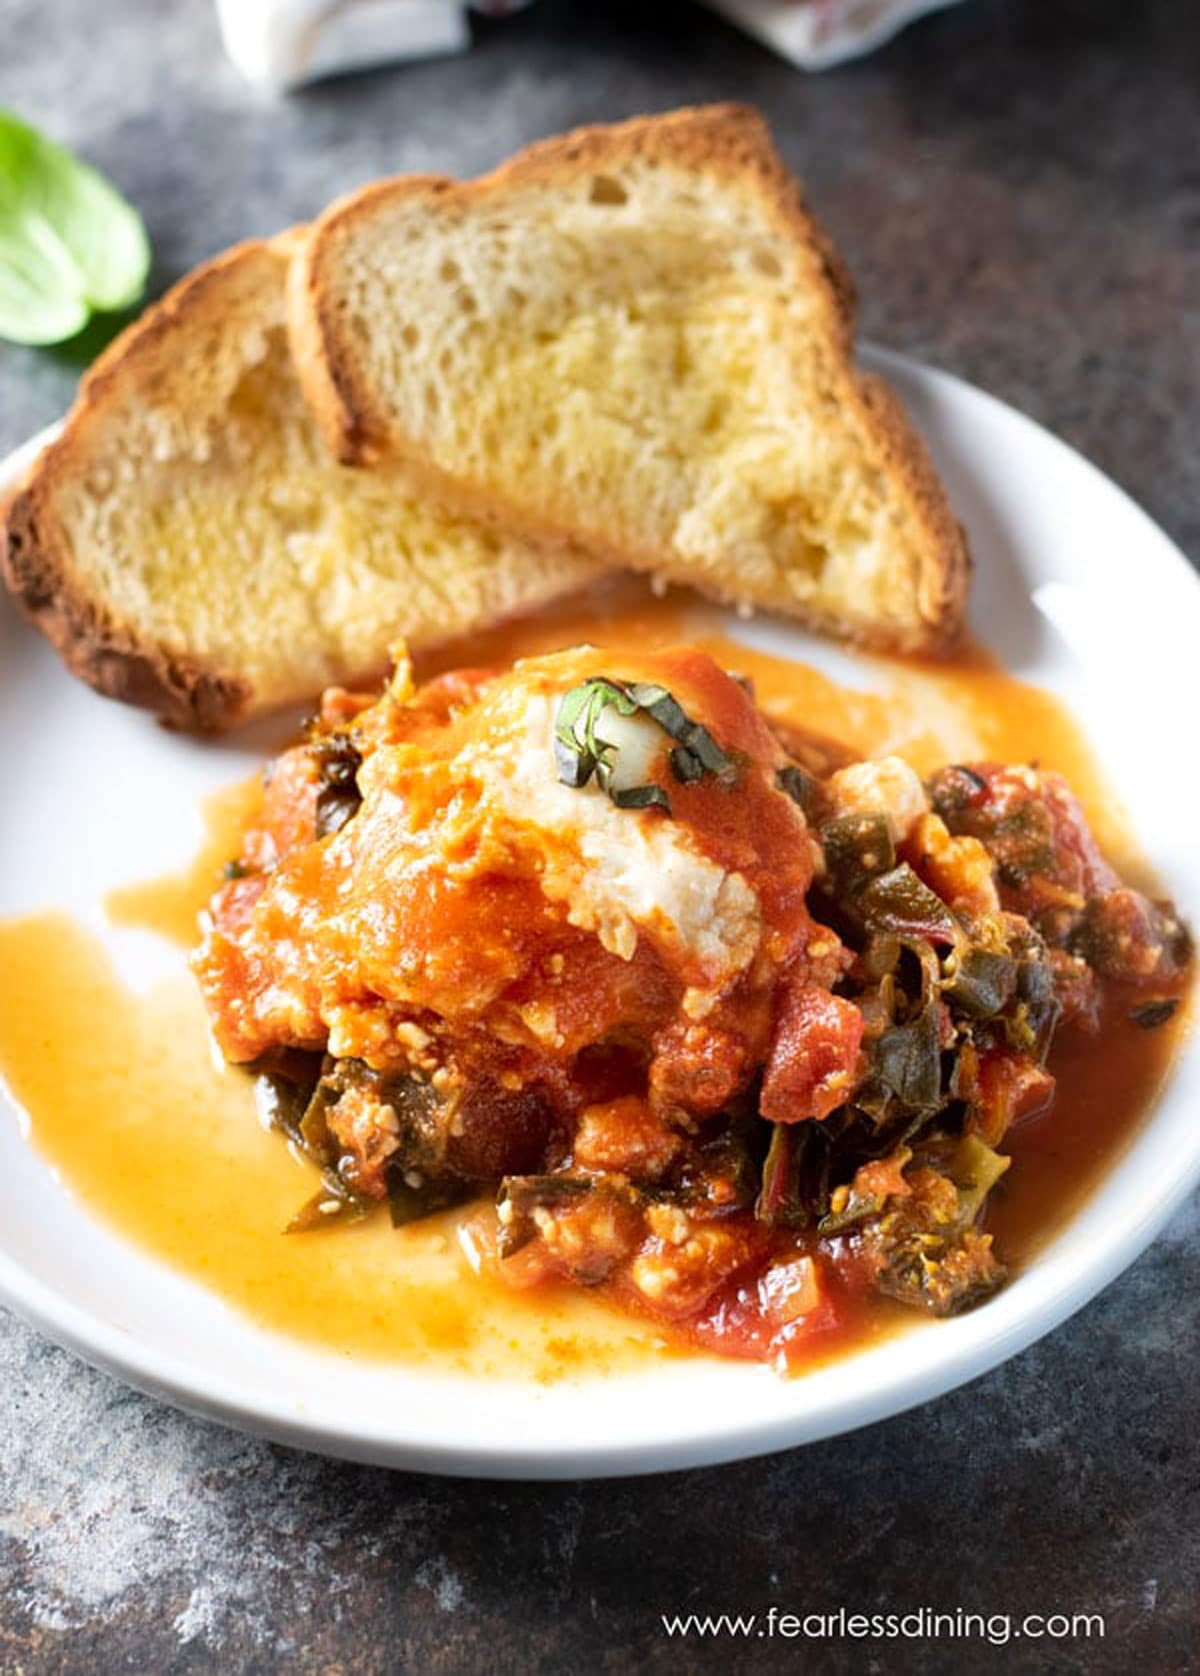 a plate filled with shakshuka and toast